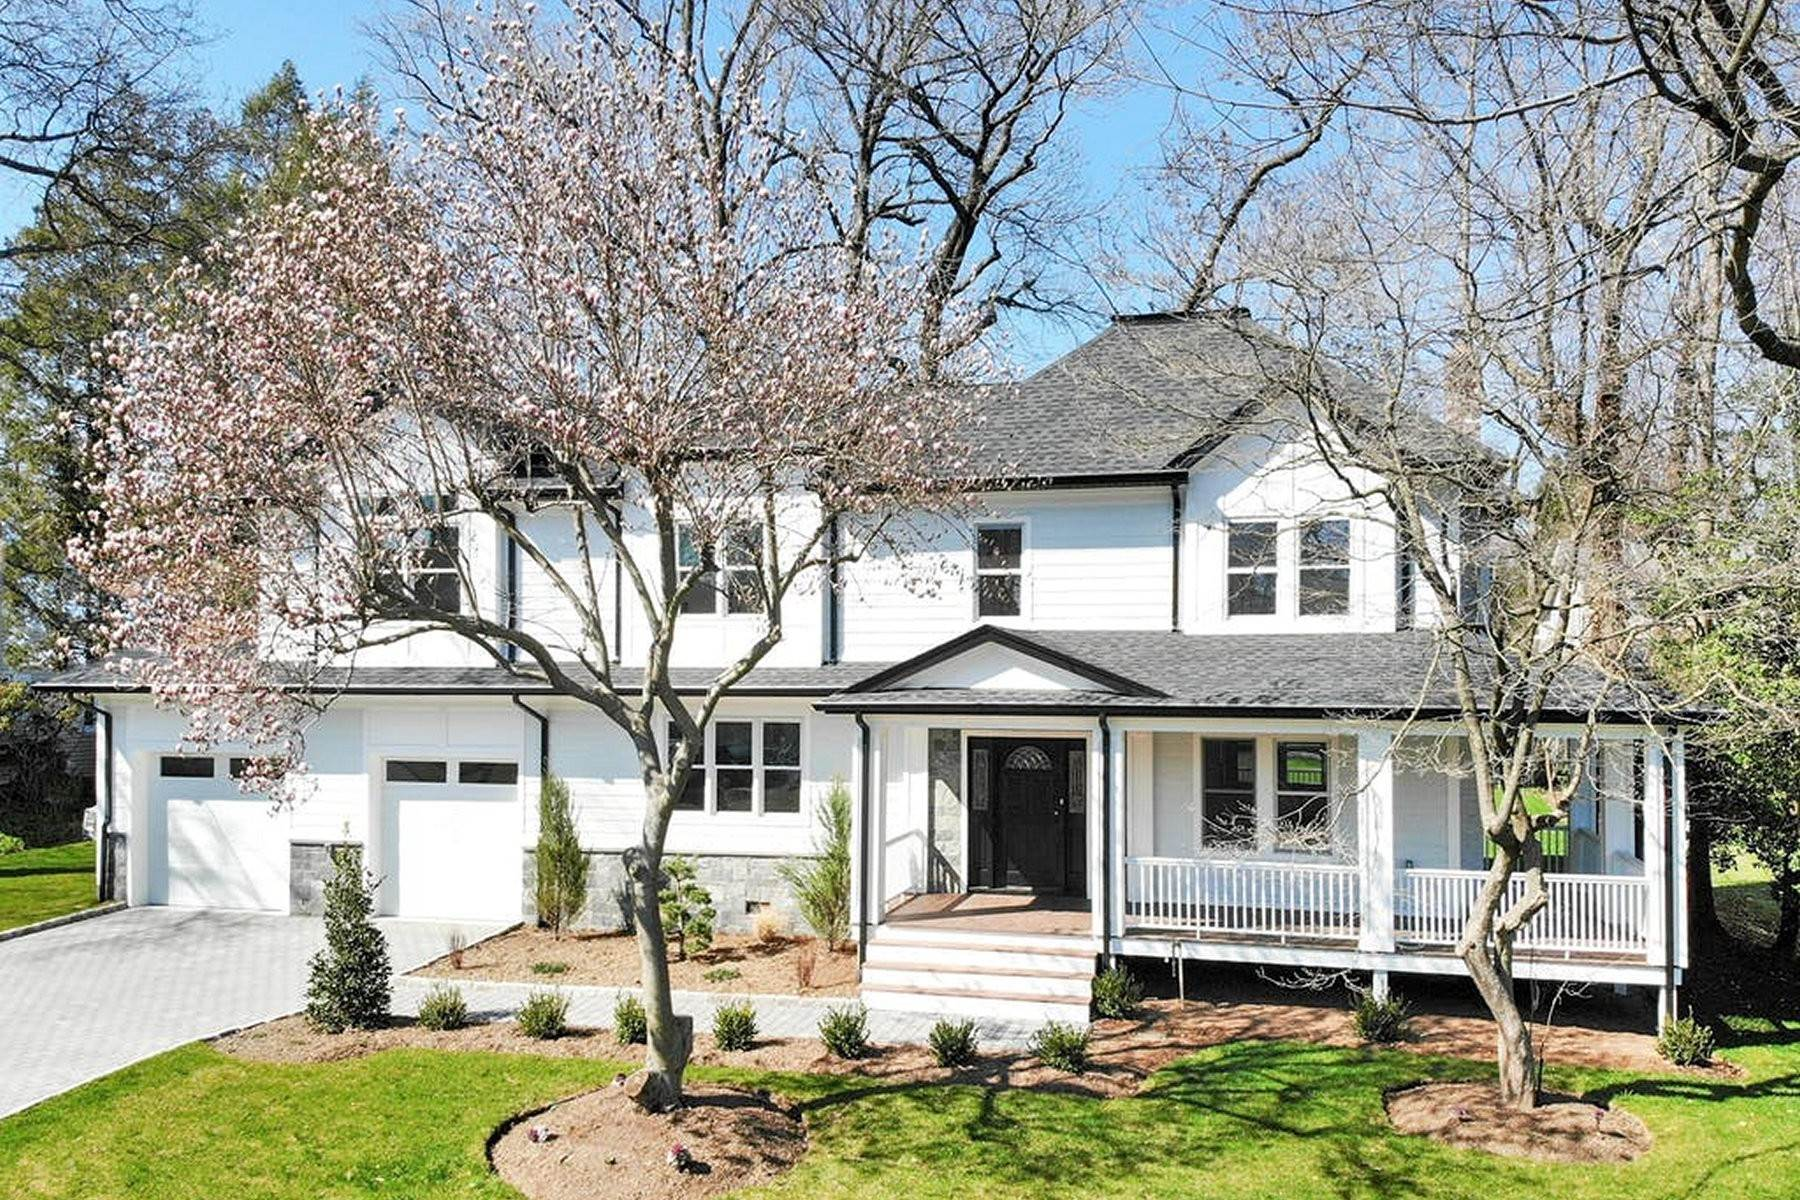 Single Family Homes for Sale at Renovated & Expanded 149 Newcomb Rd Tenafly, New Jersey 07670 United States